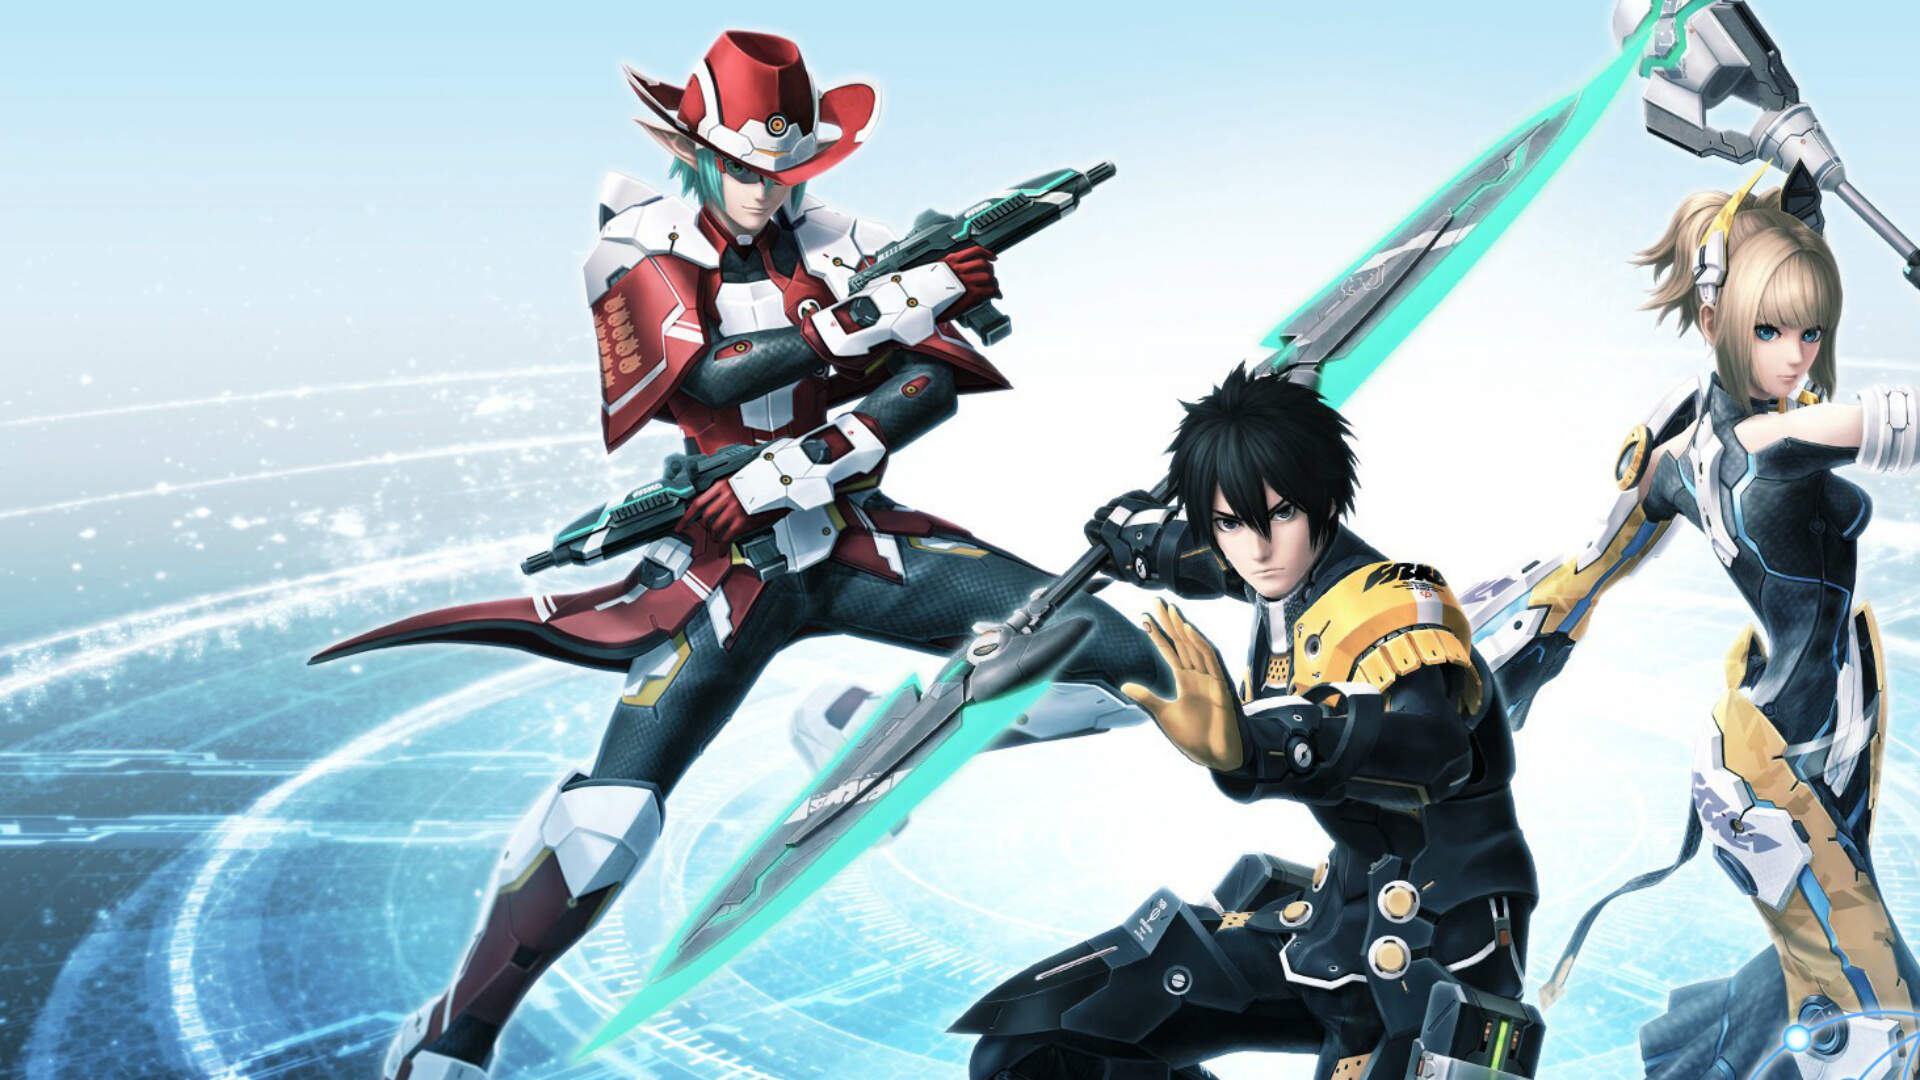 Phantasy Star Online 2 Makes Me Think It's About Time for Phantasy Star Online 3